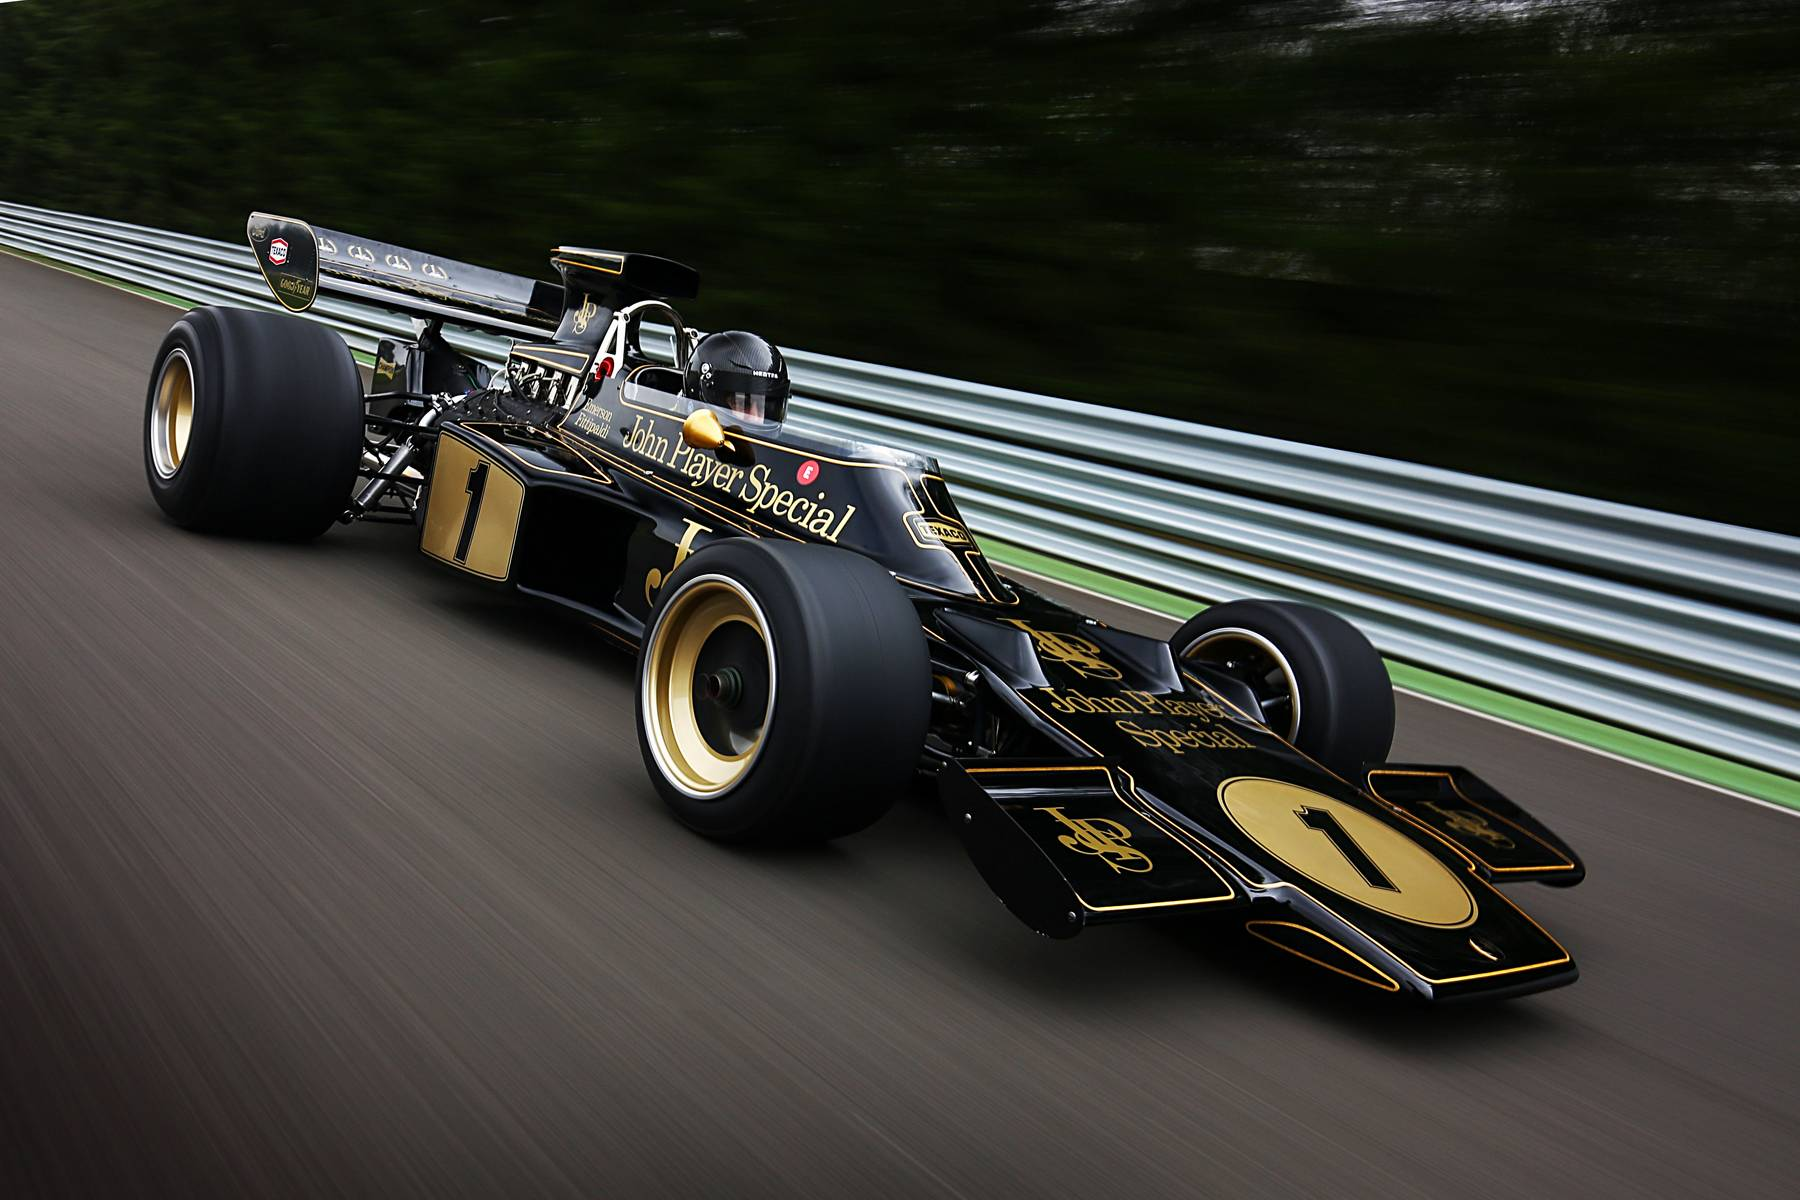 Lotus is greatest ever F1 car